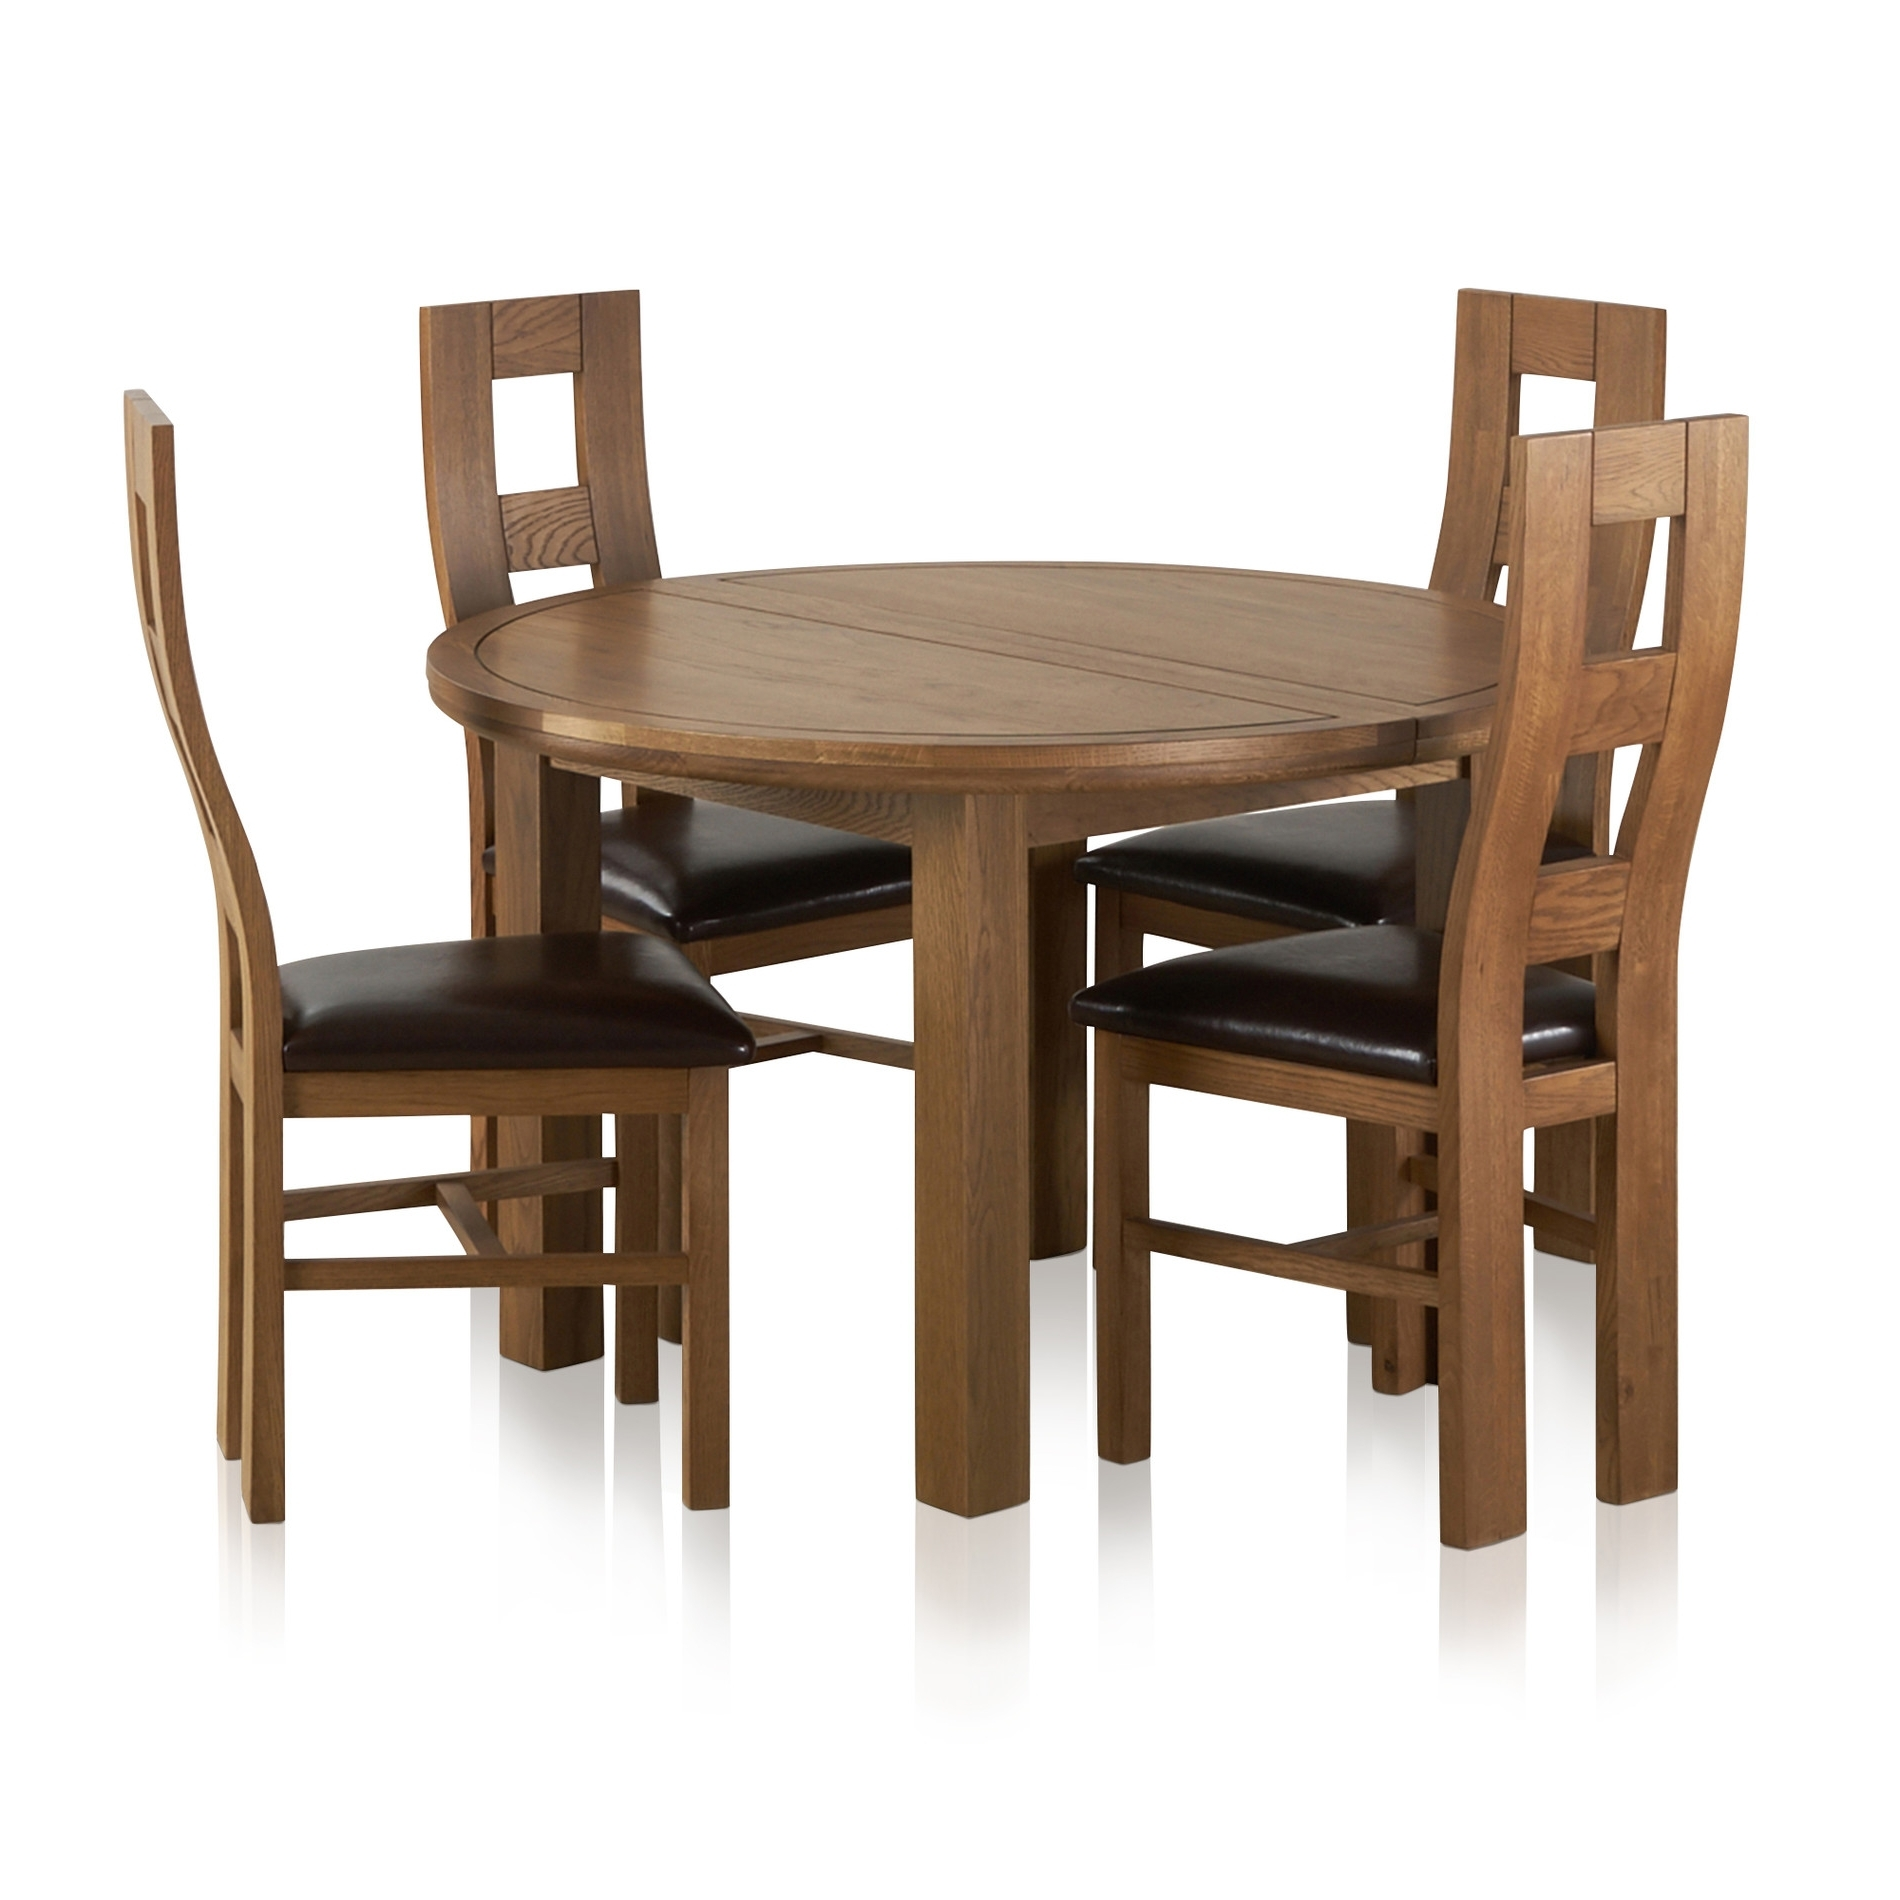 Favorite Knightsbridge Round Extending Dining Table + 4 Leather Chairs Intended For Round Oak Dining Tables And 4 Chairs (View 19 of 25)